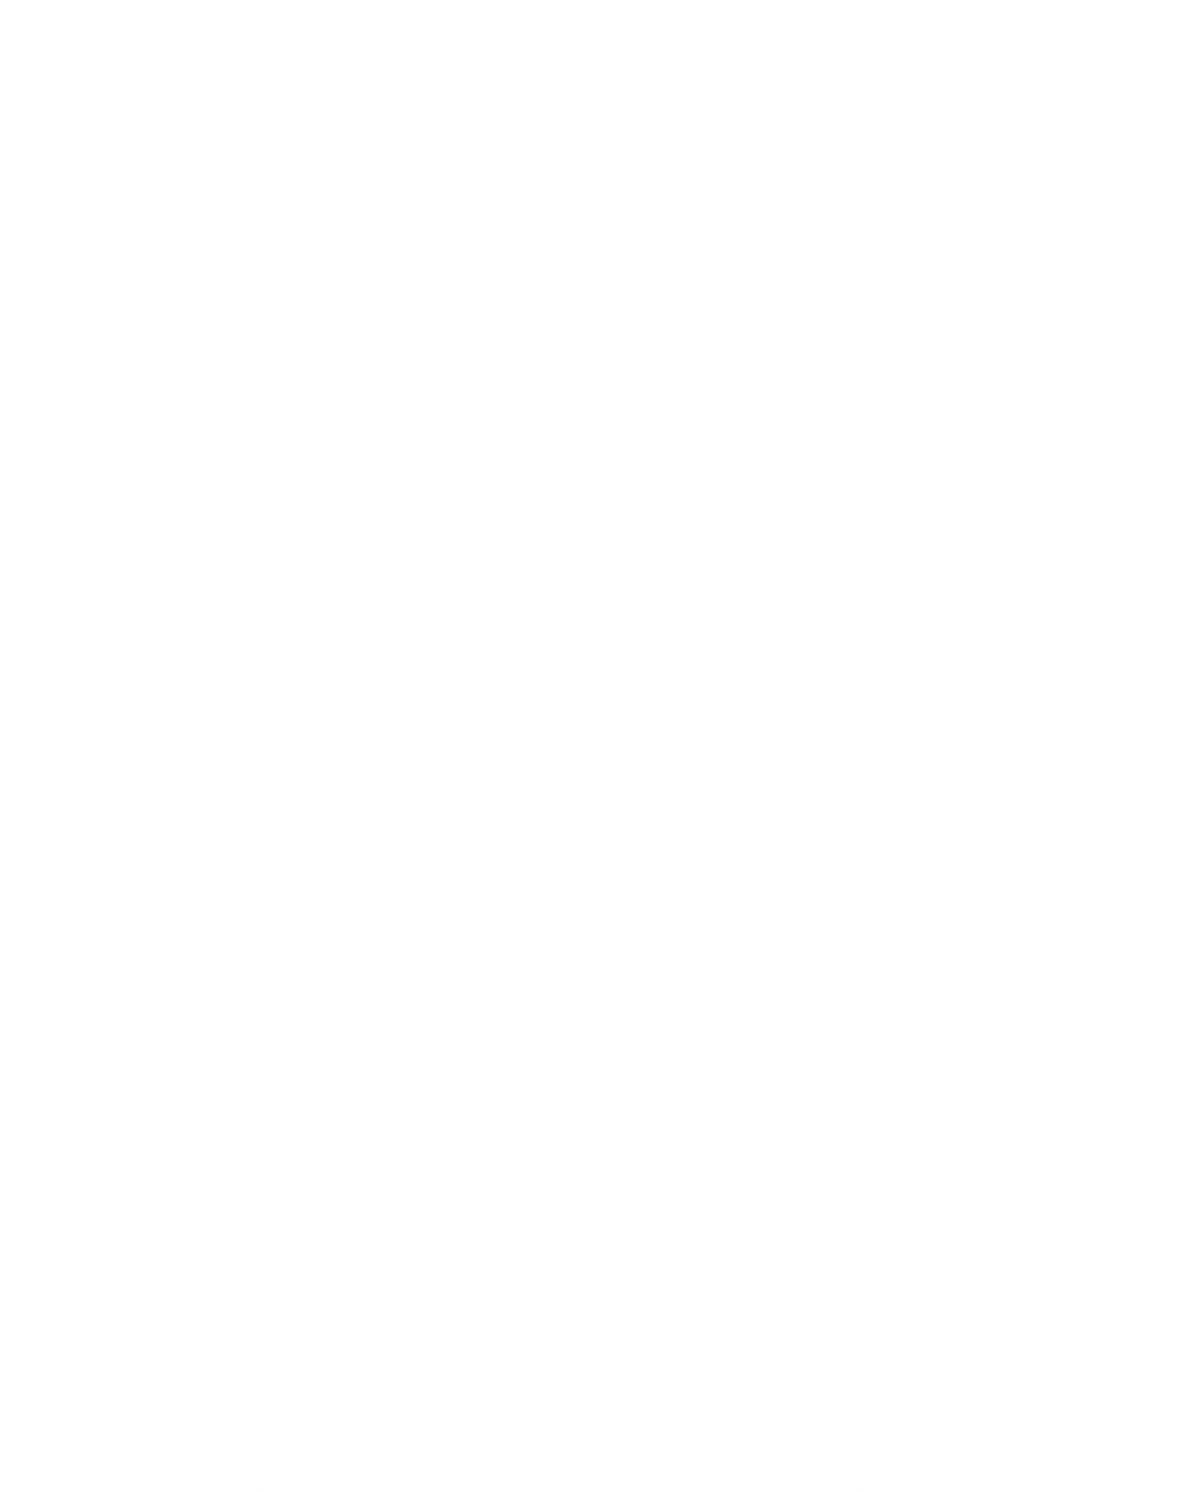 Idaho Tower Construction